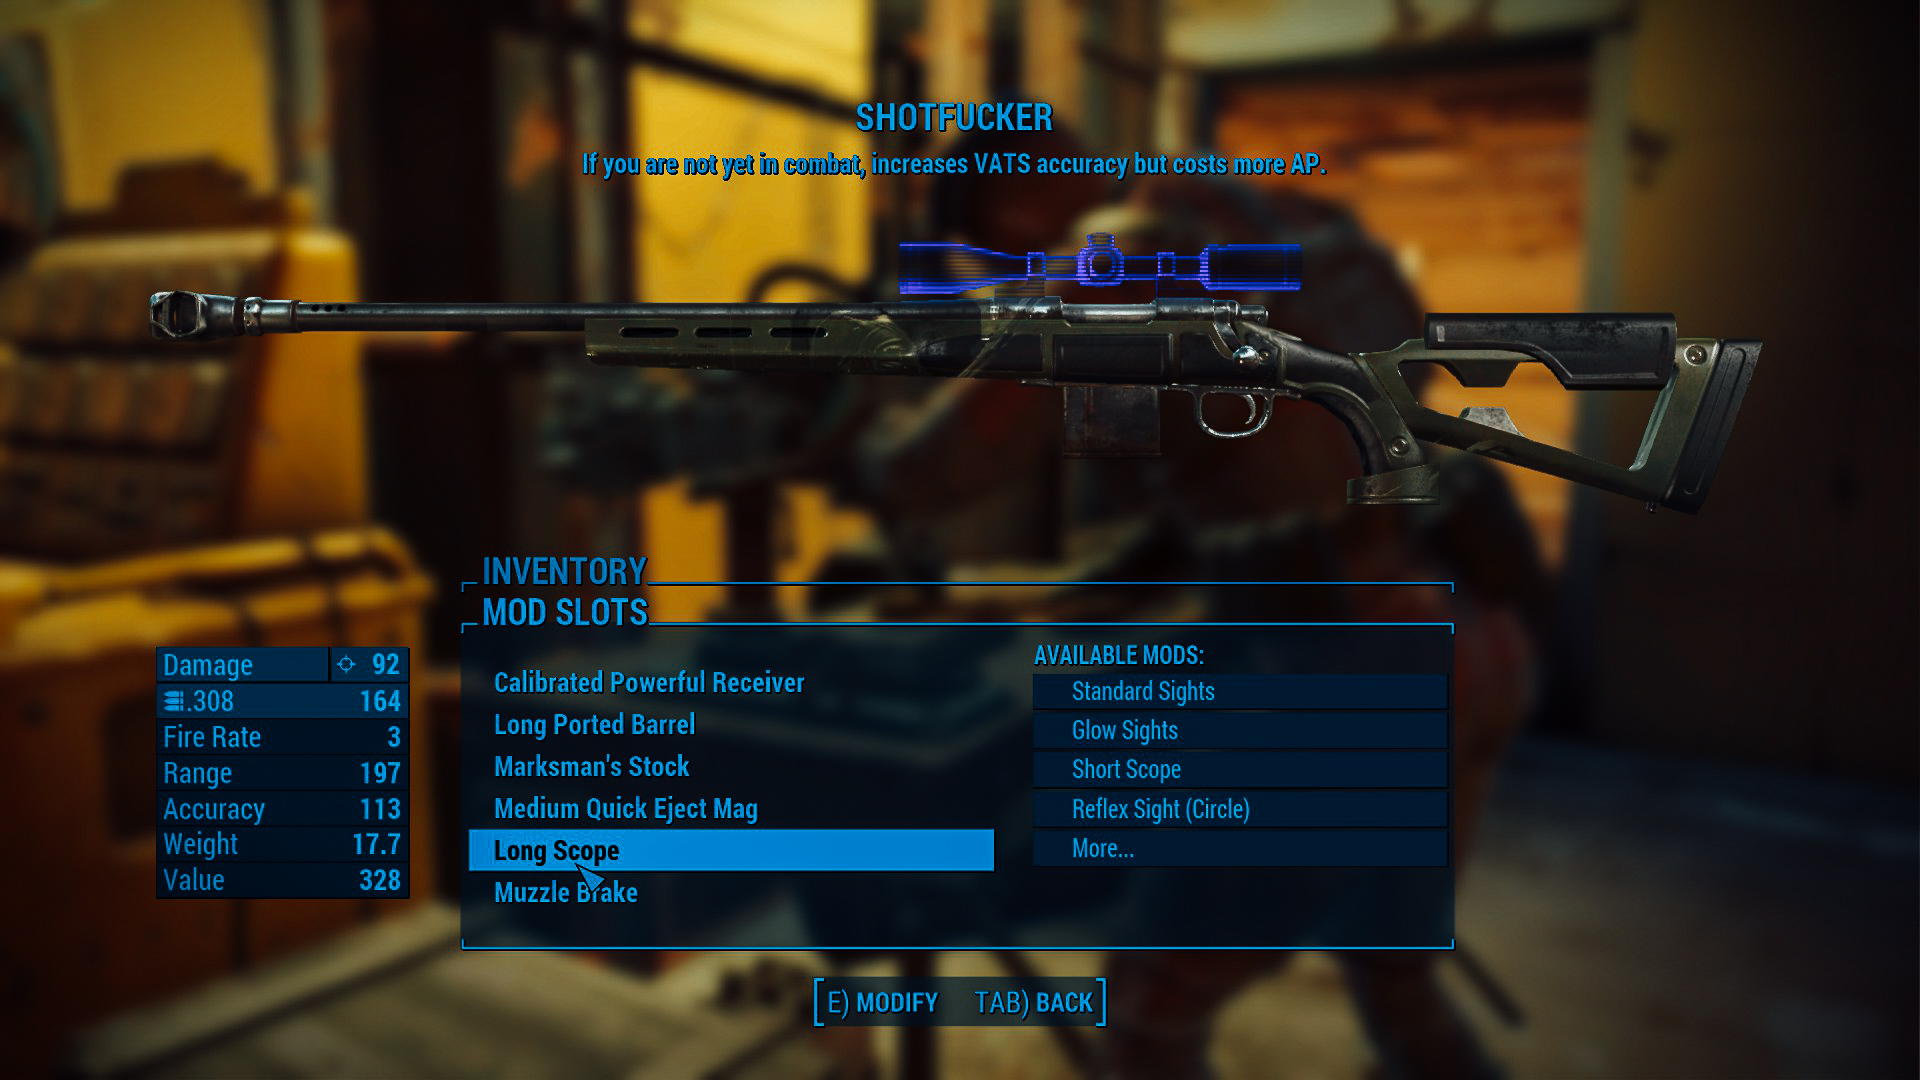 My sniper rifle, Shotfucker...